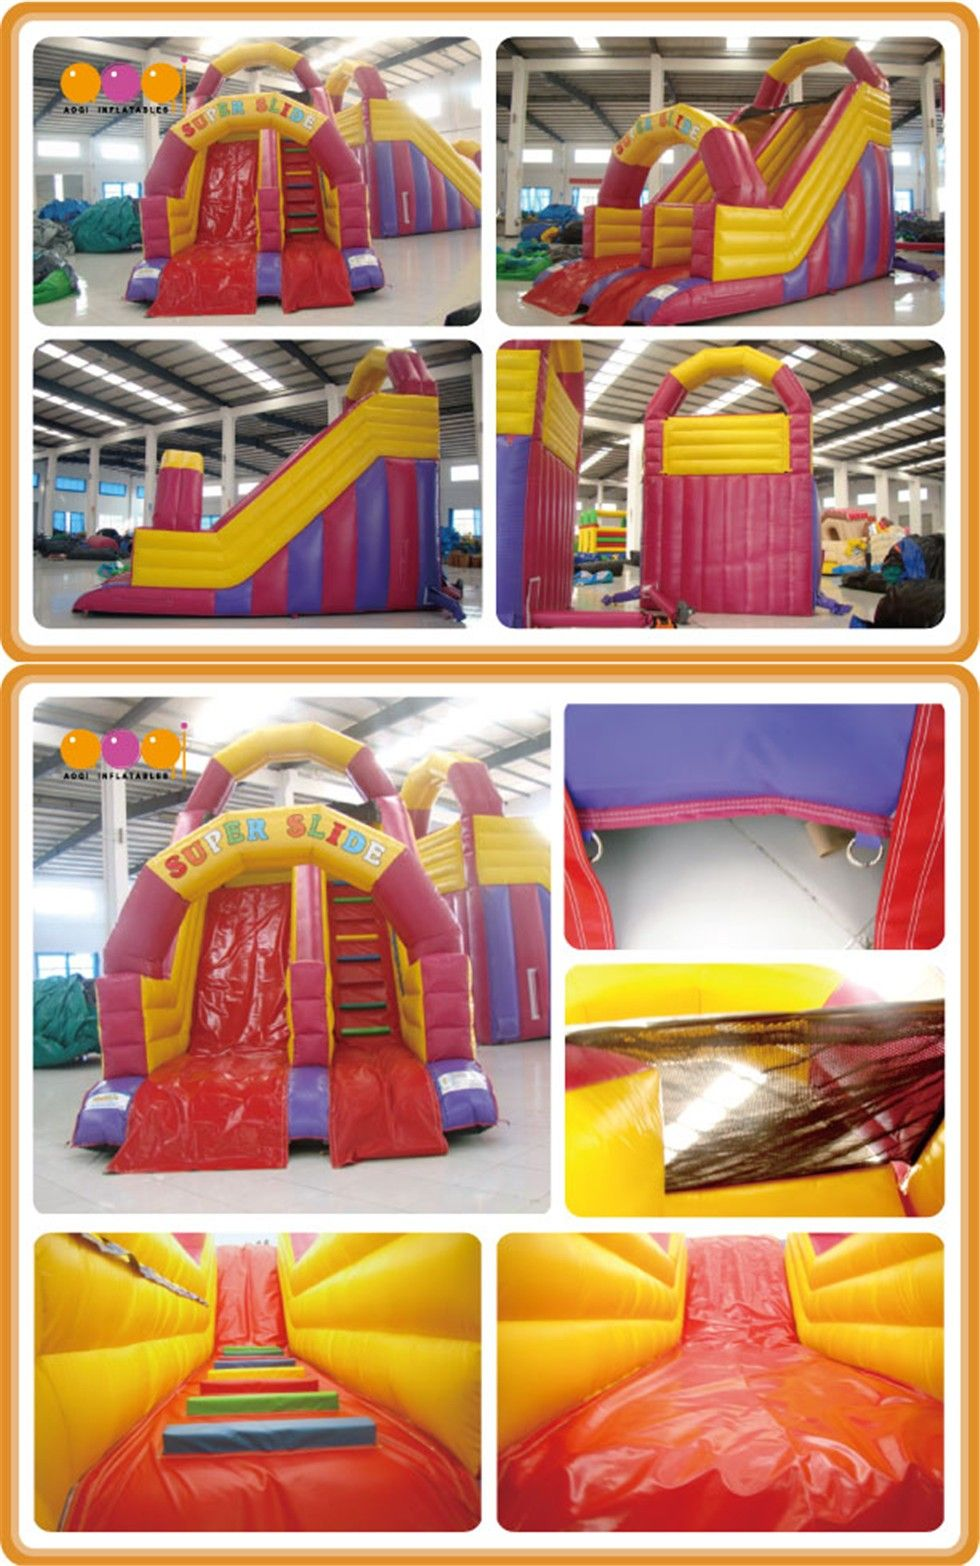 Aq9132746m 231320 the super slide is one of